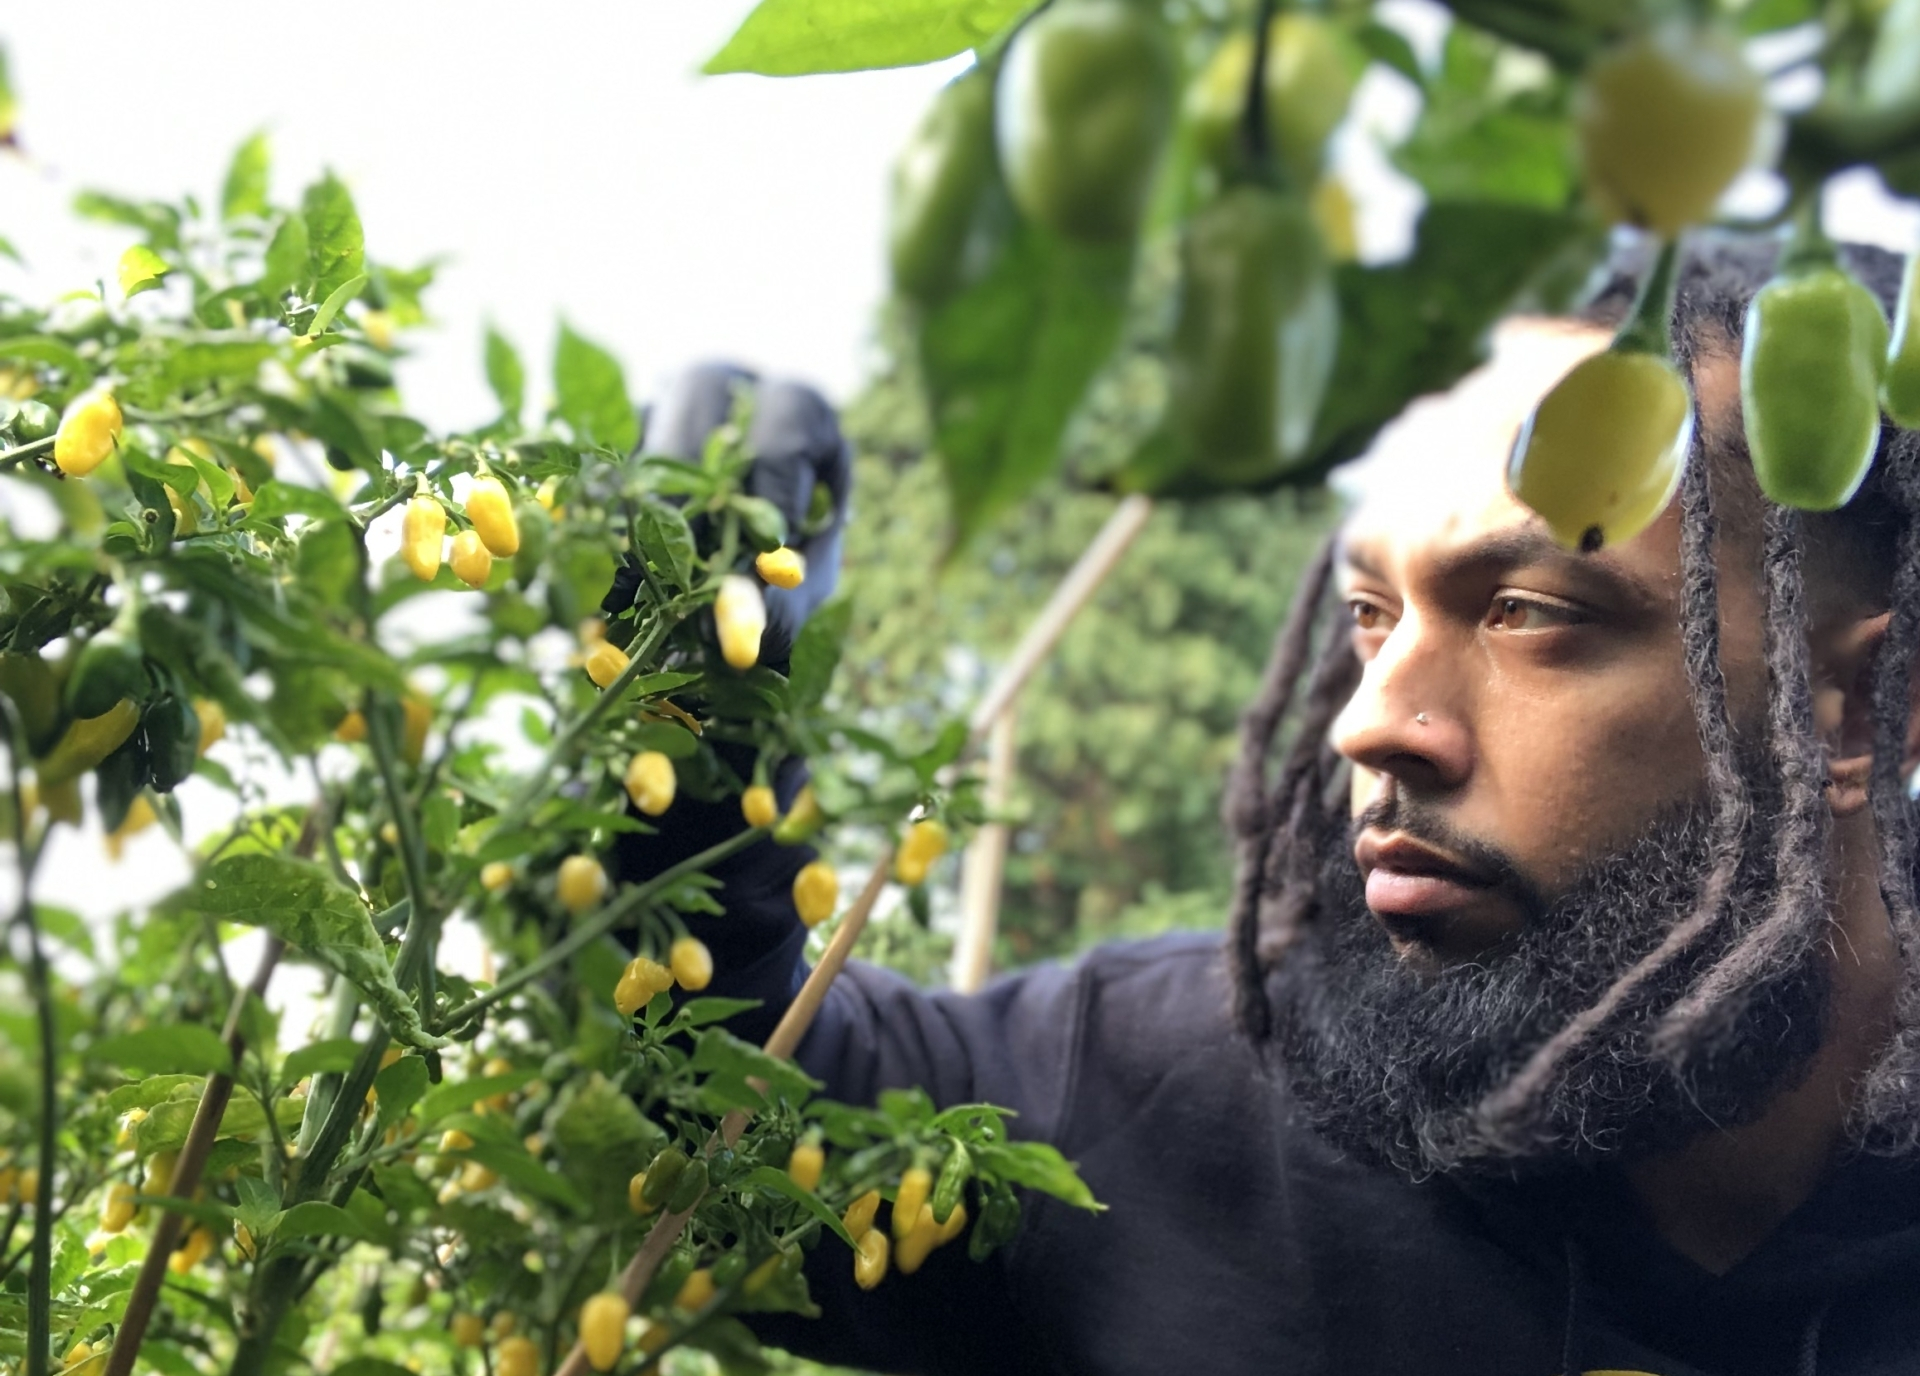 Black Owned Pepper and Spice Farm